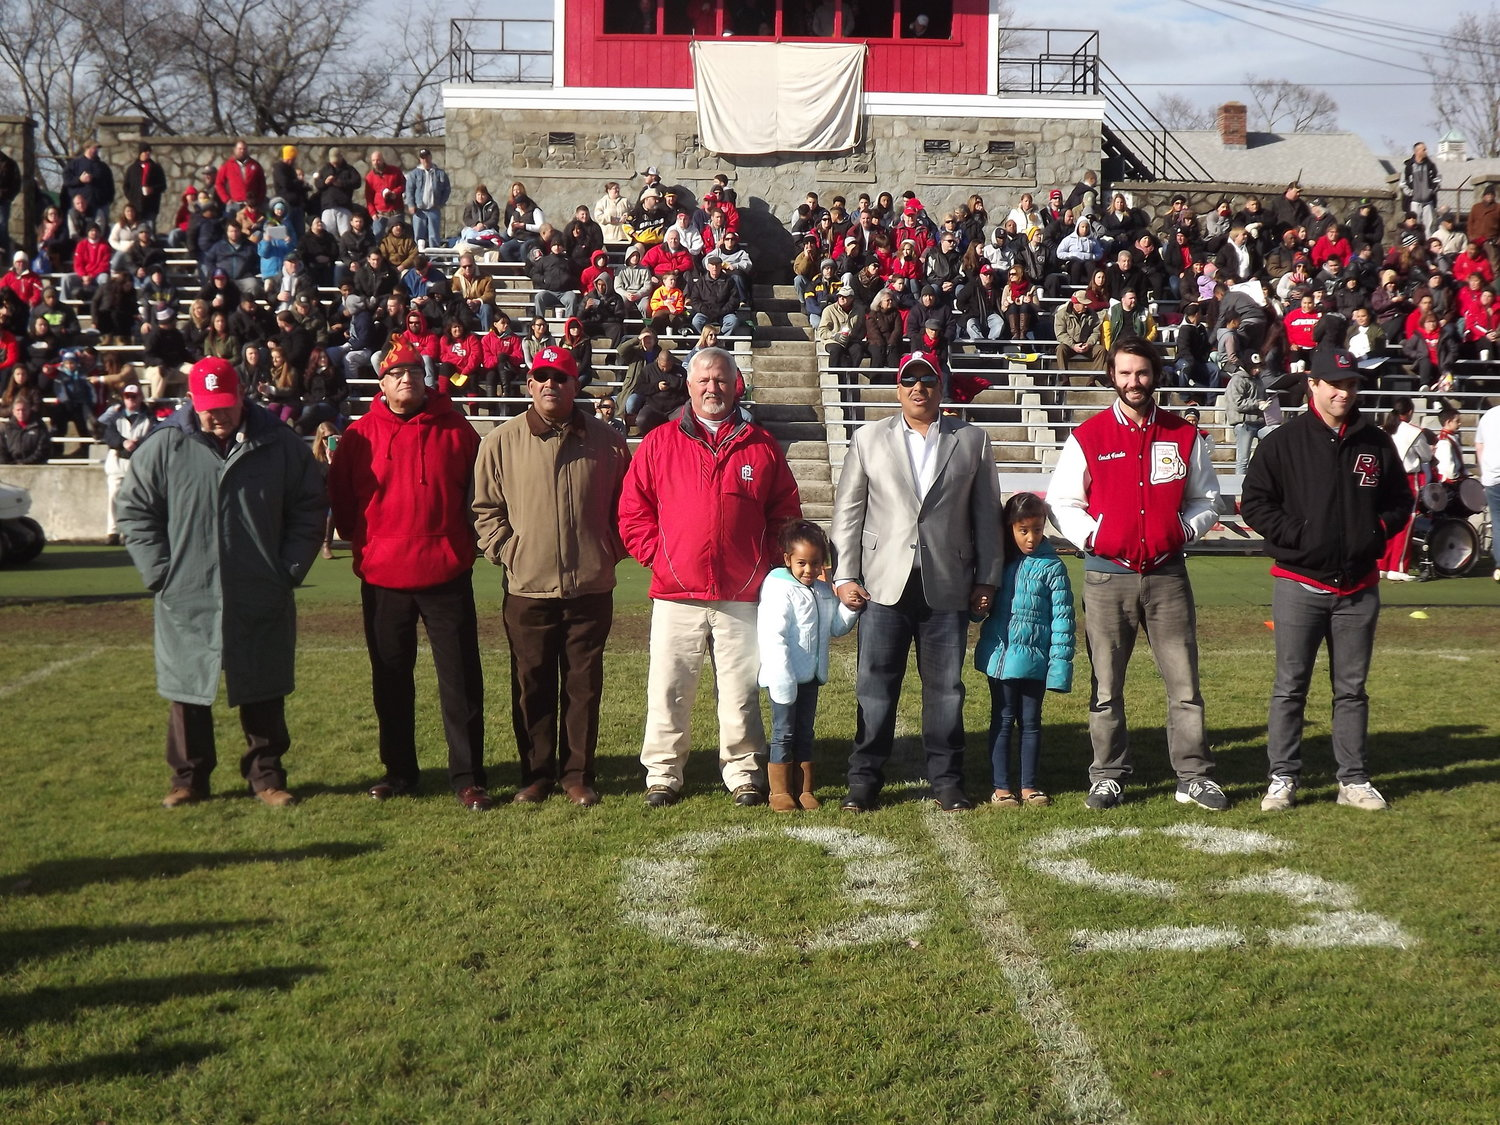 Representing 7 decades of Townie football from the 1940s to 2000s L to R, Bill Stringfellow, Harry Edmonds, Junior Butler, Jim Rose, Matt Lopes, Joe Wahl and Jaime Silva at 2014 game.